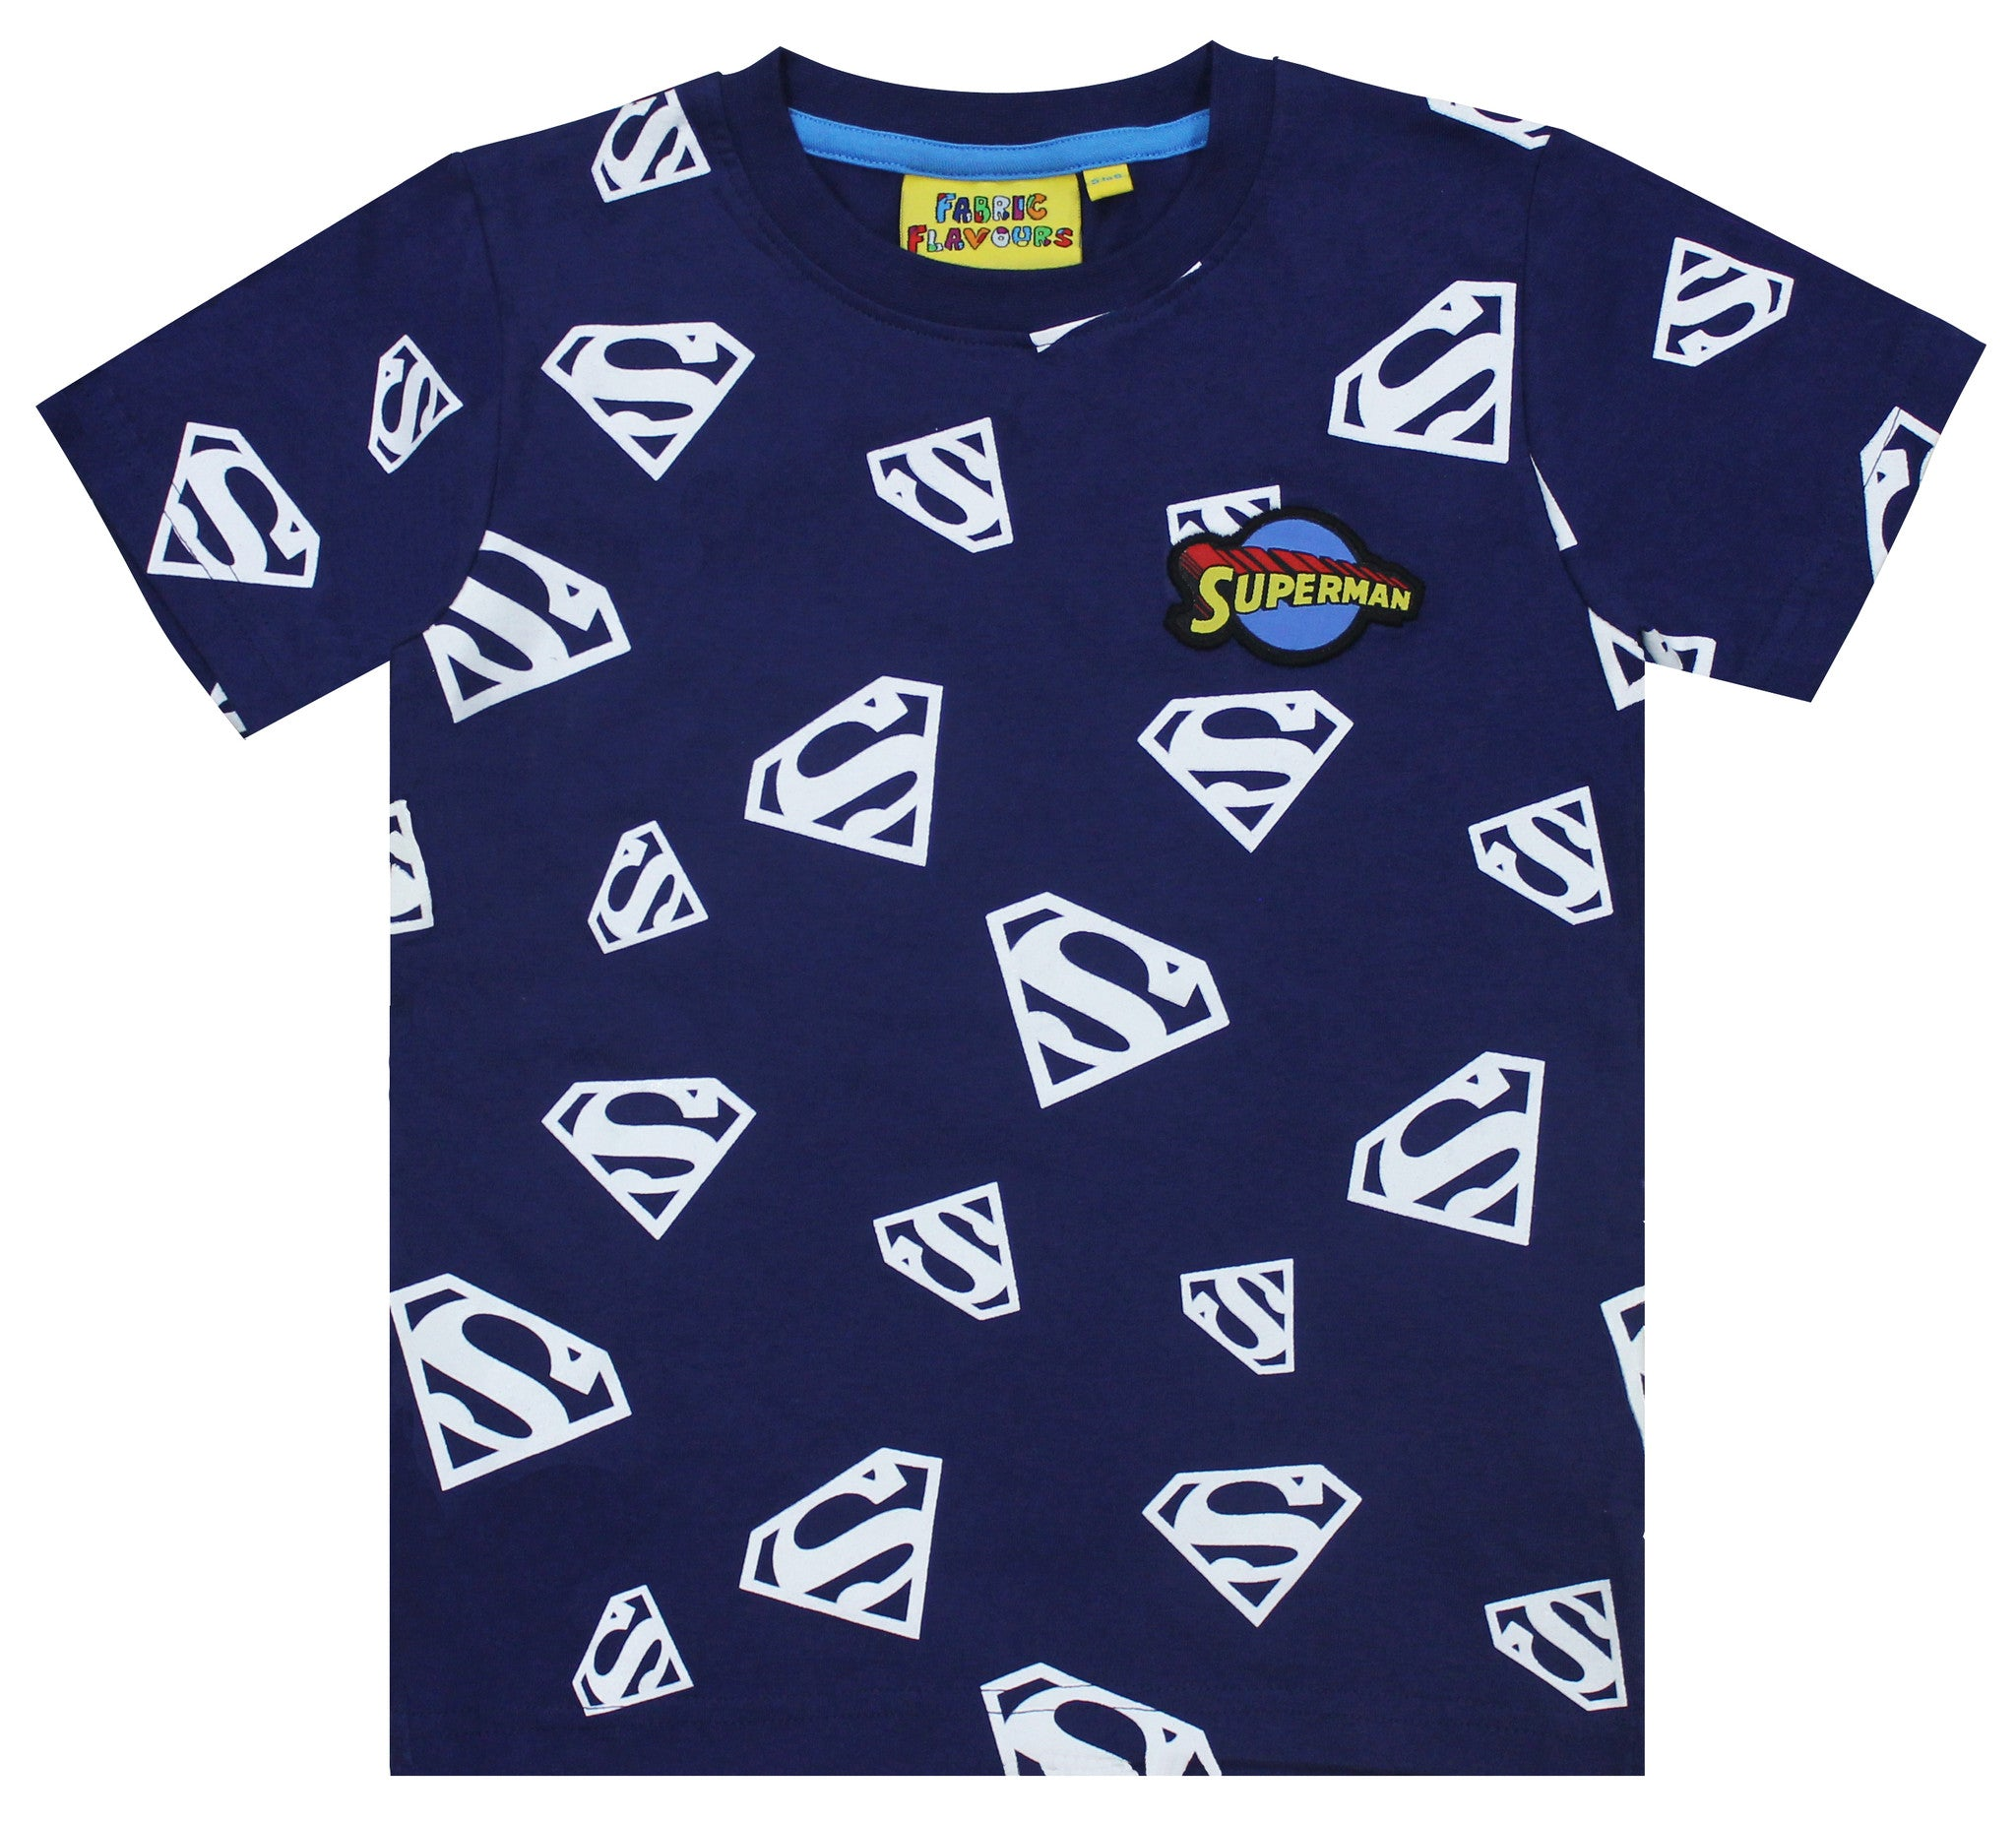 Superman Glow In The Dark Repeat Print Tee